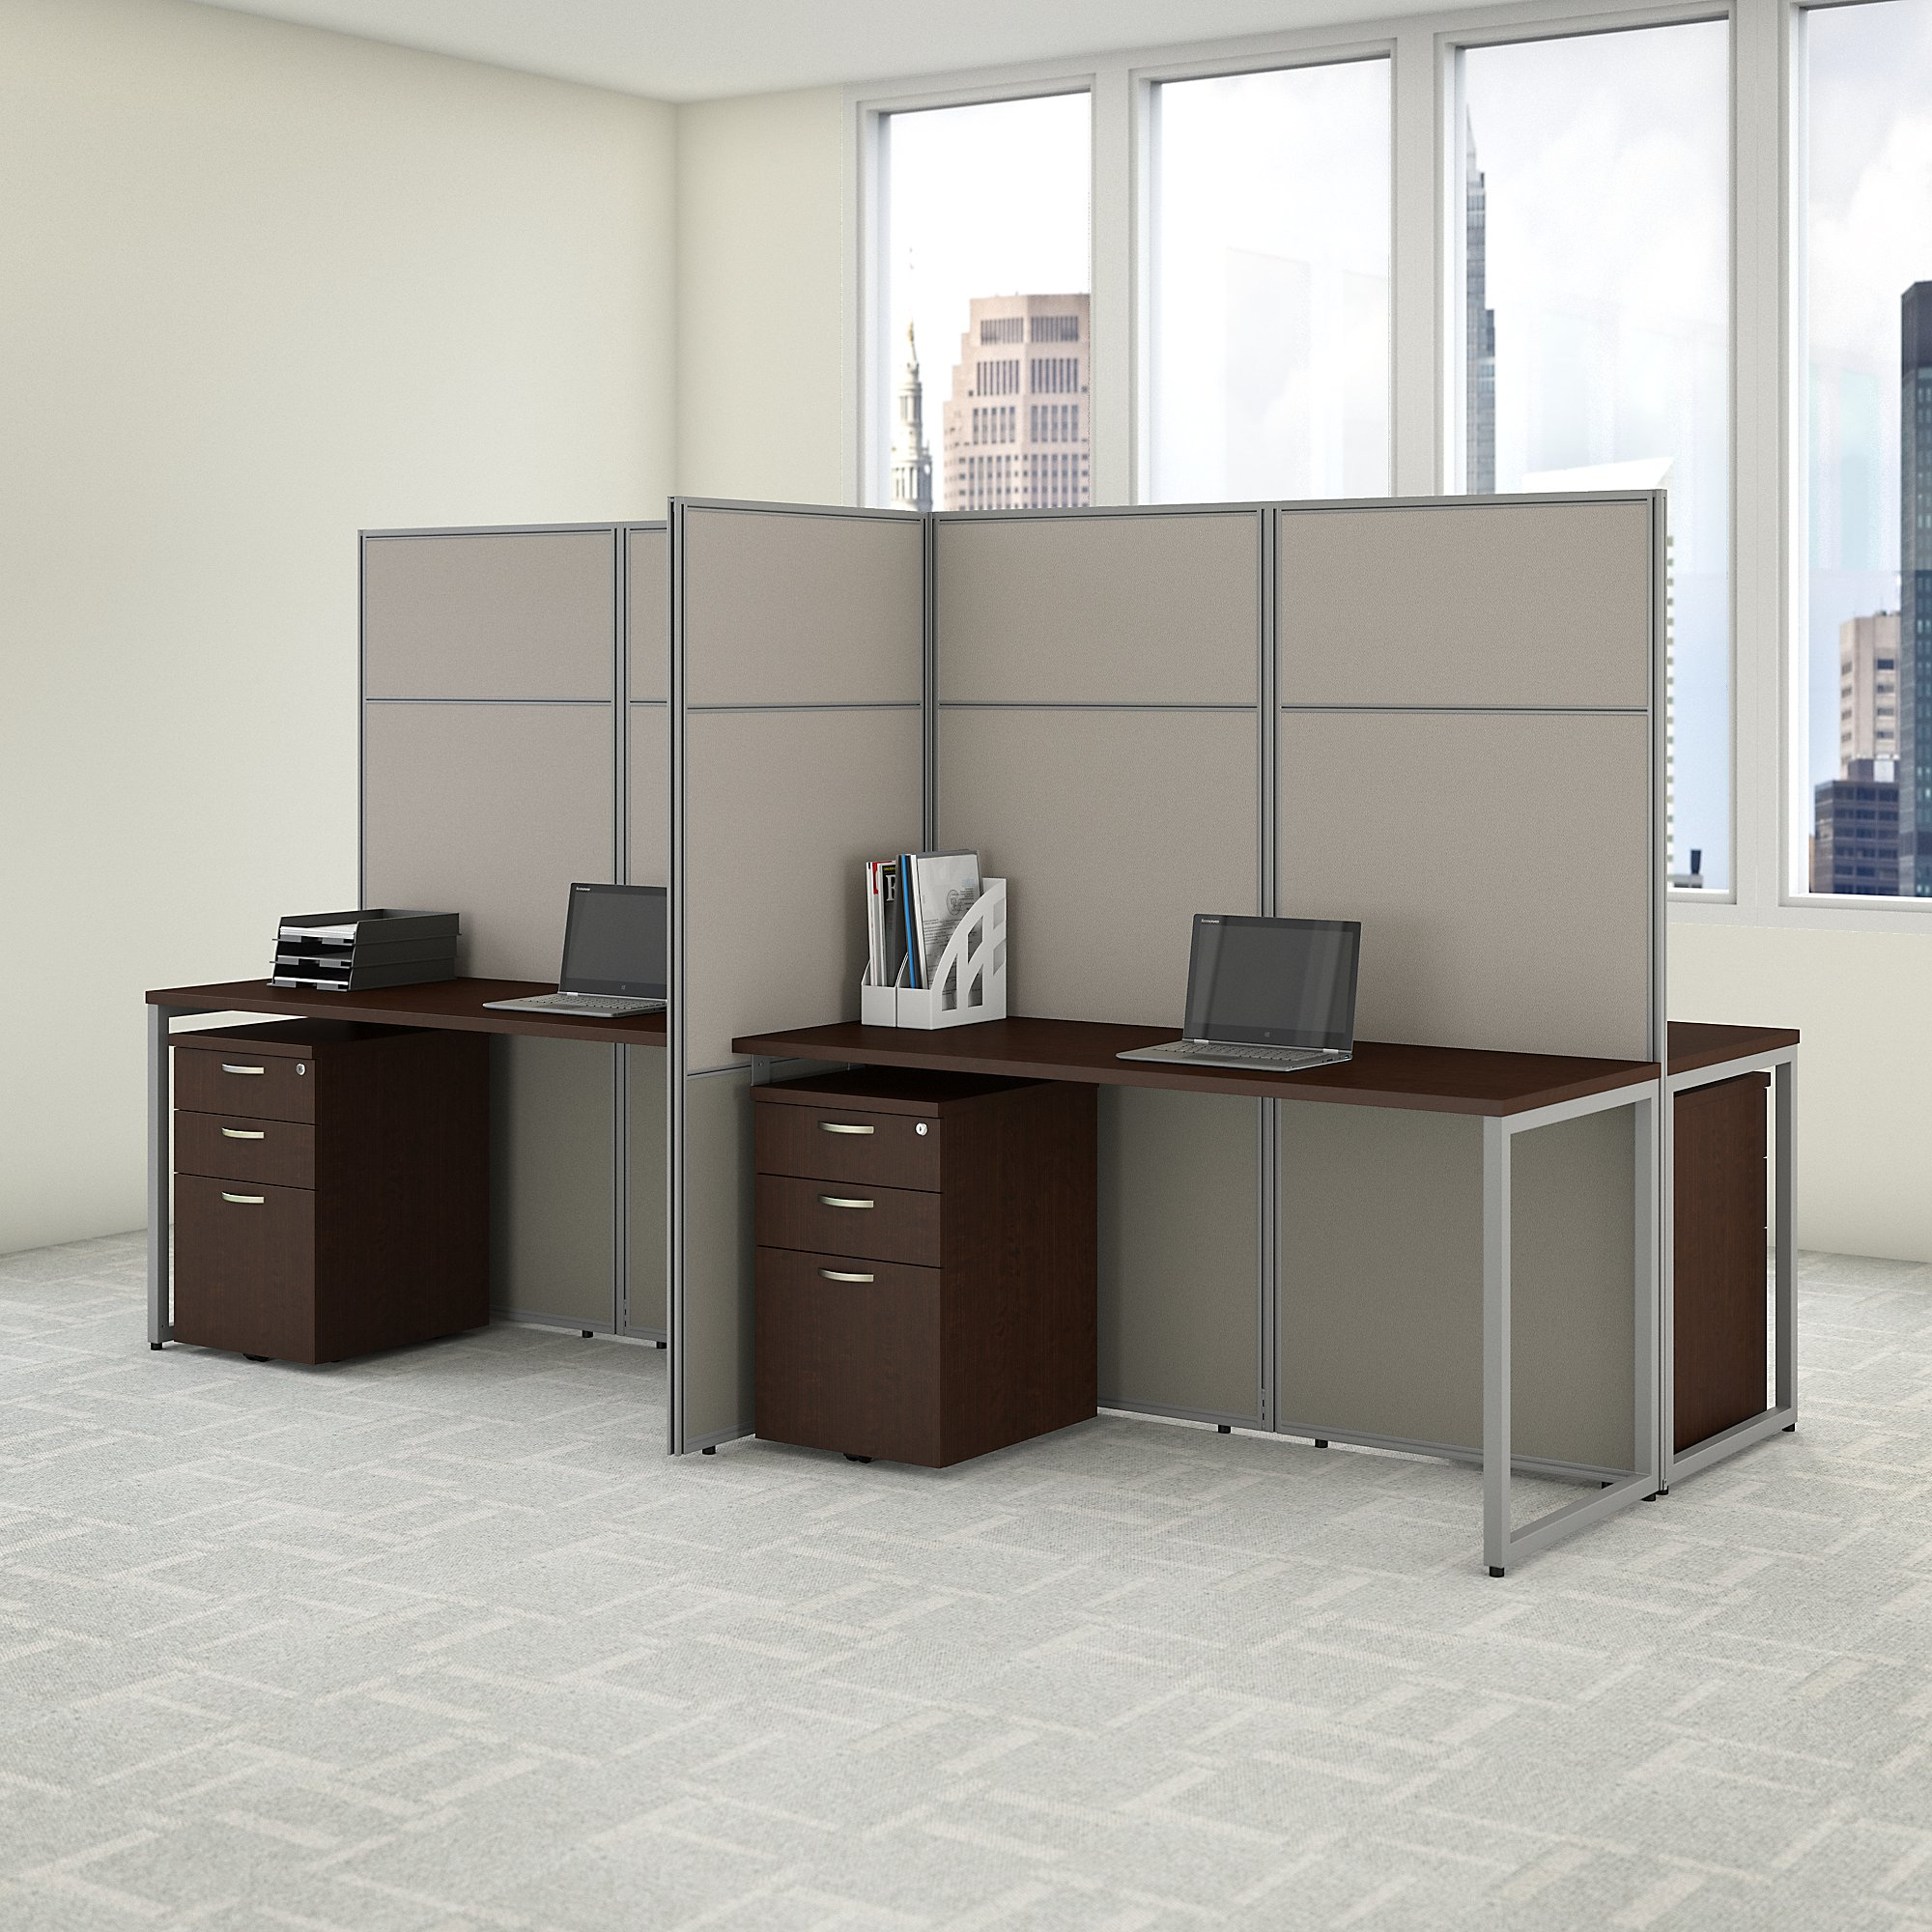 easy office 4 person cubicle with storage in mocha cherry